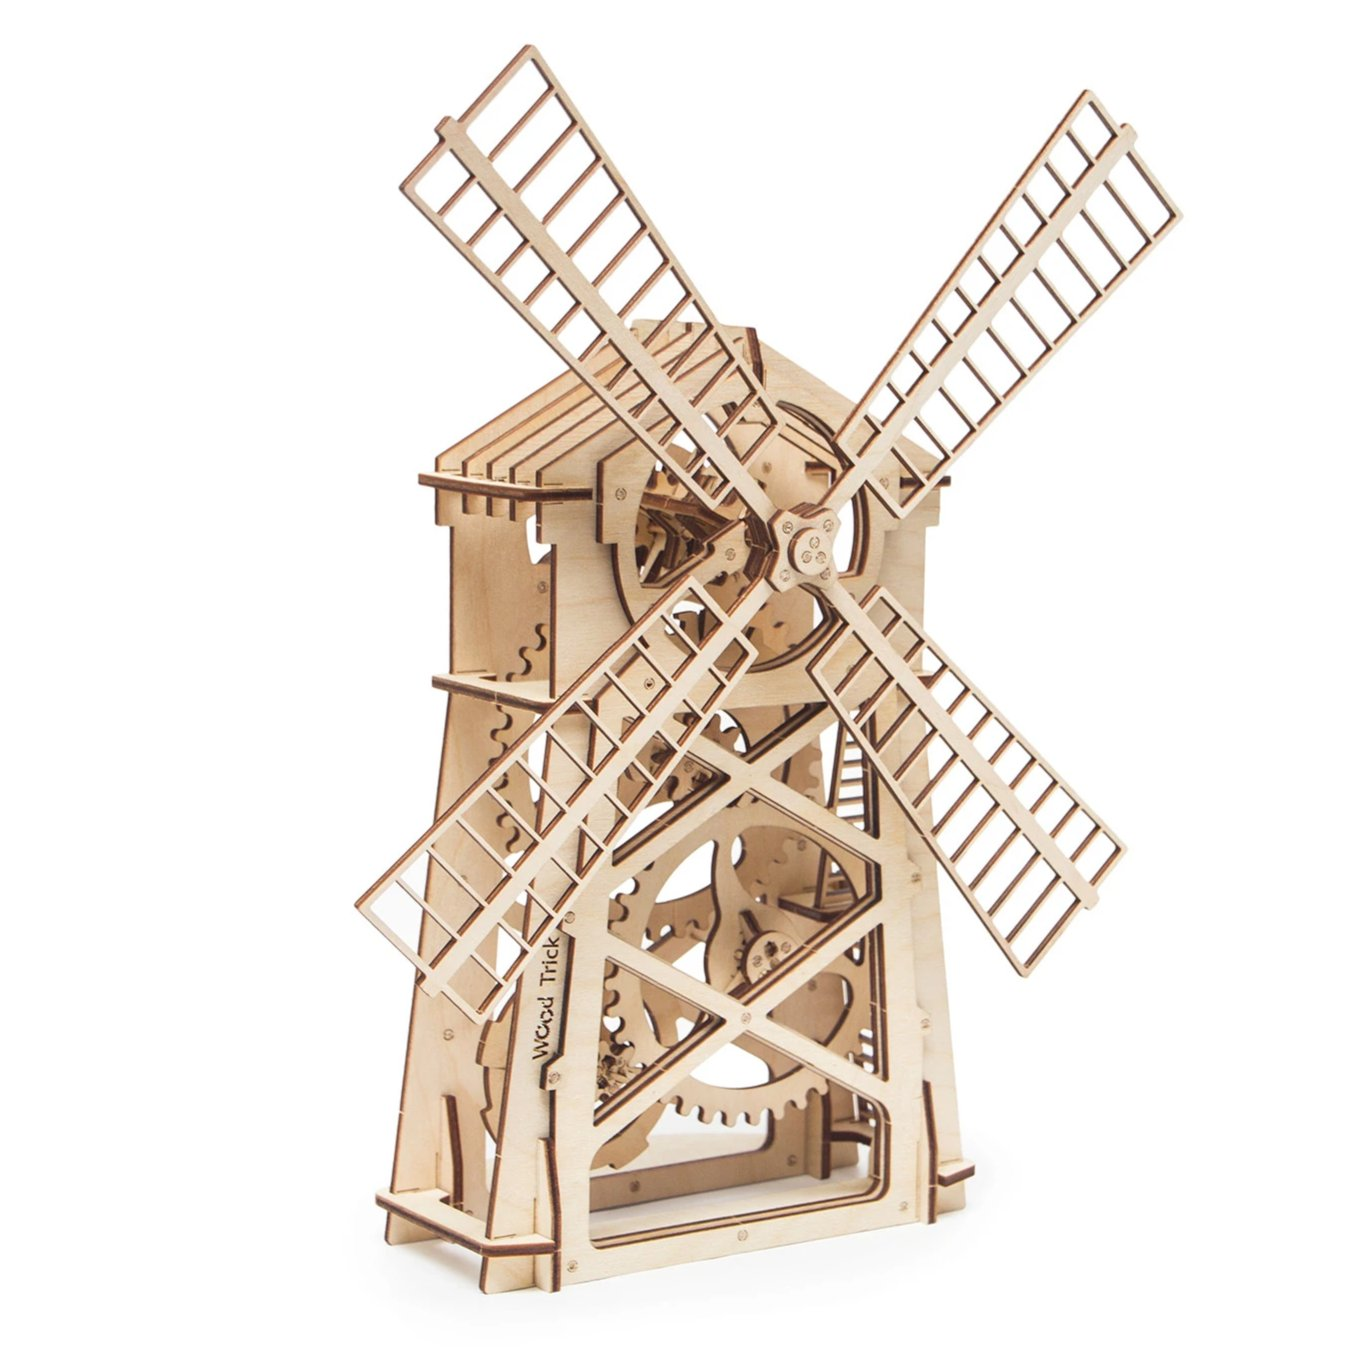 Windmill Wooden Toy Model For Kids And Adults